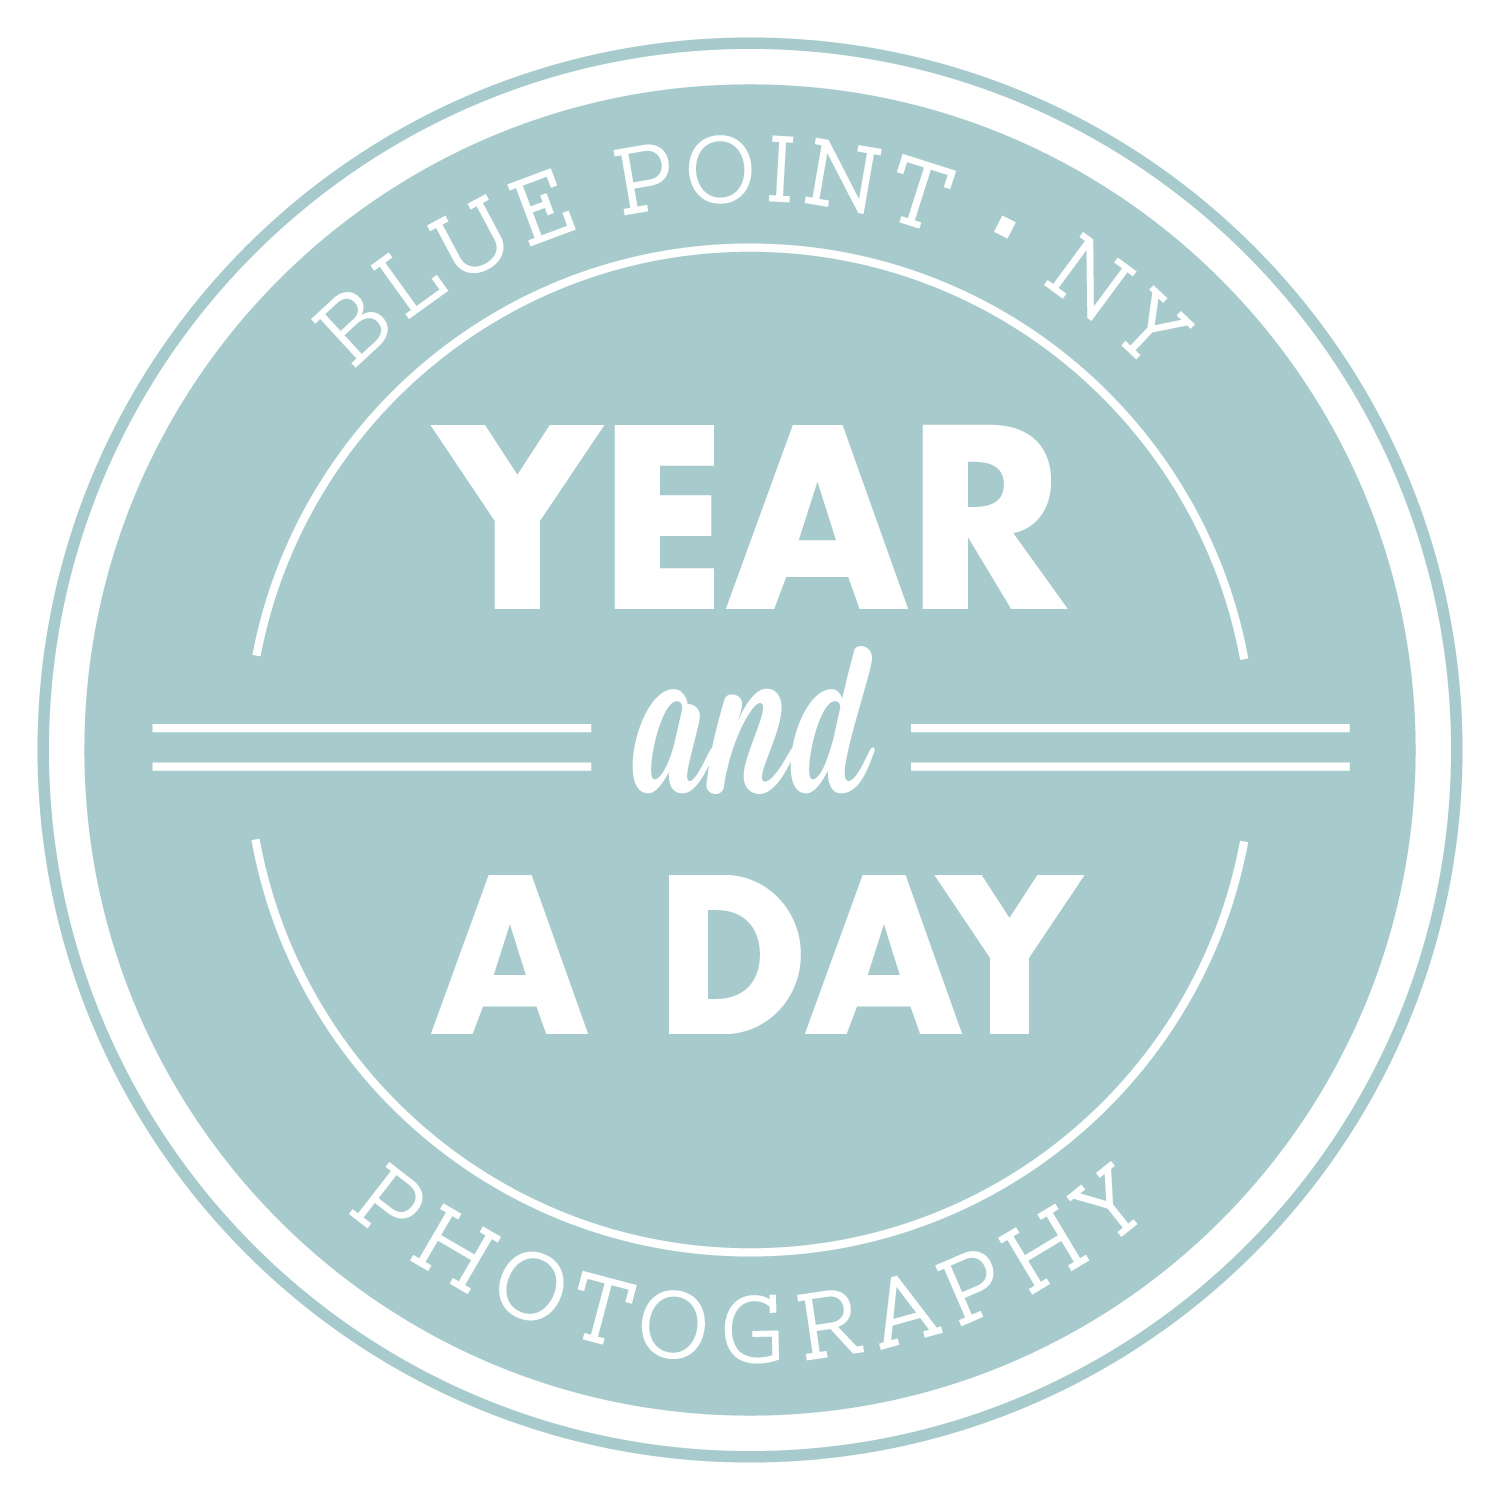 Year and a Day Photography